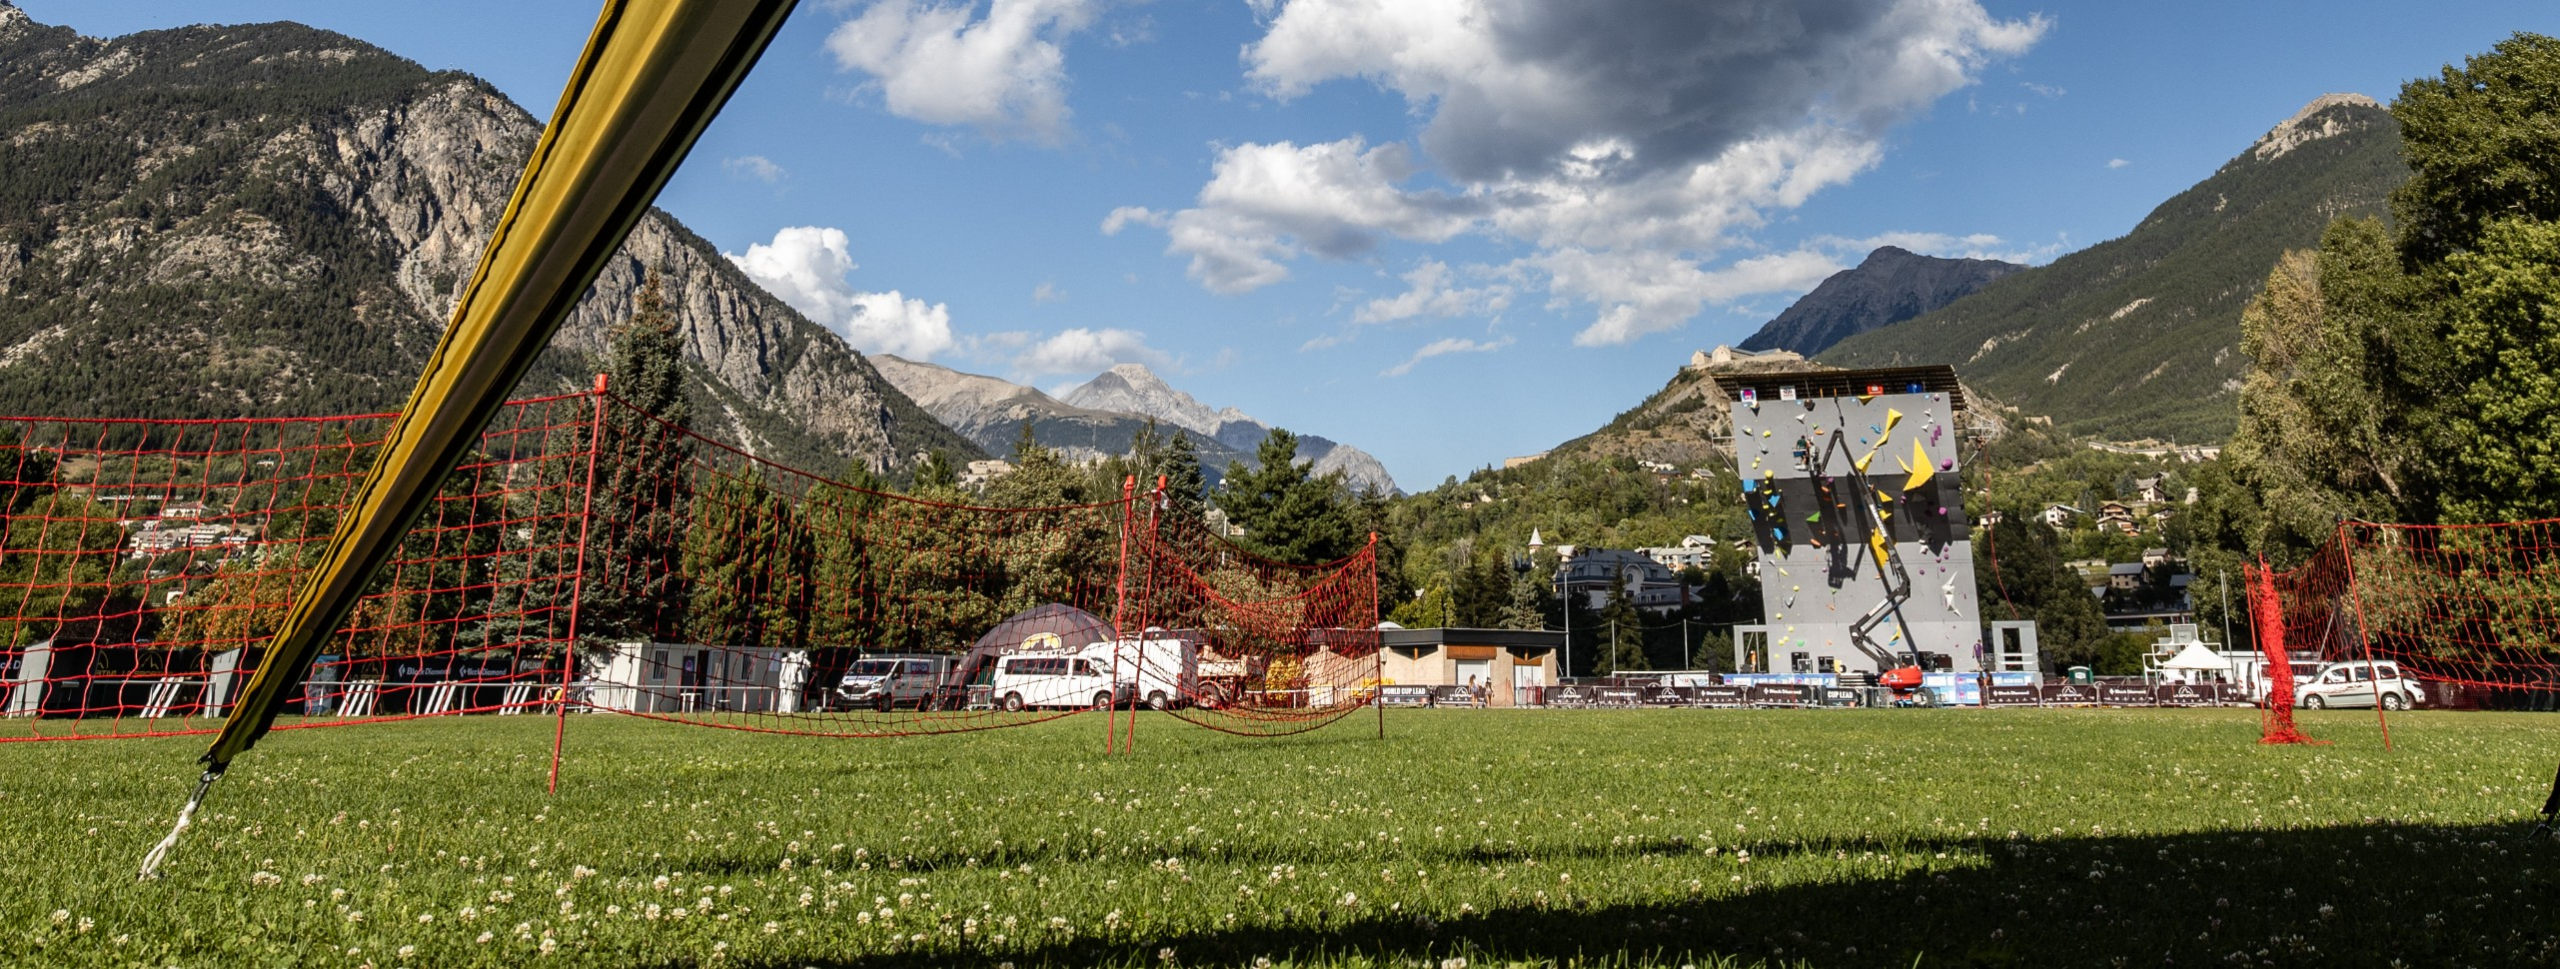 IFSC News Briancon is ready to host the first IFSC World Cup of the season PREV